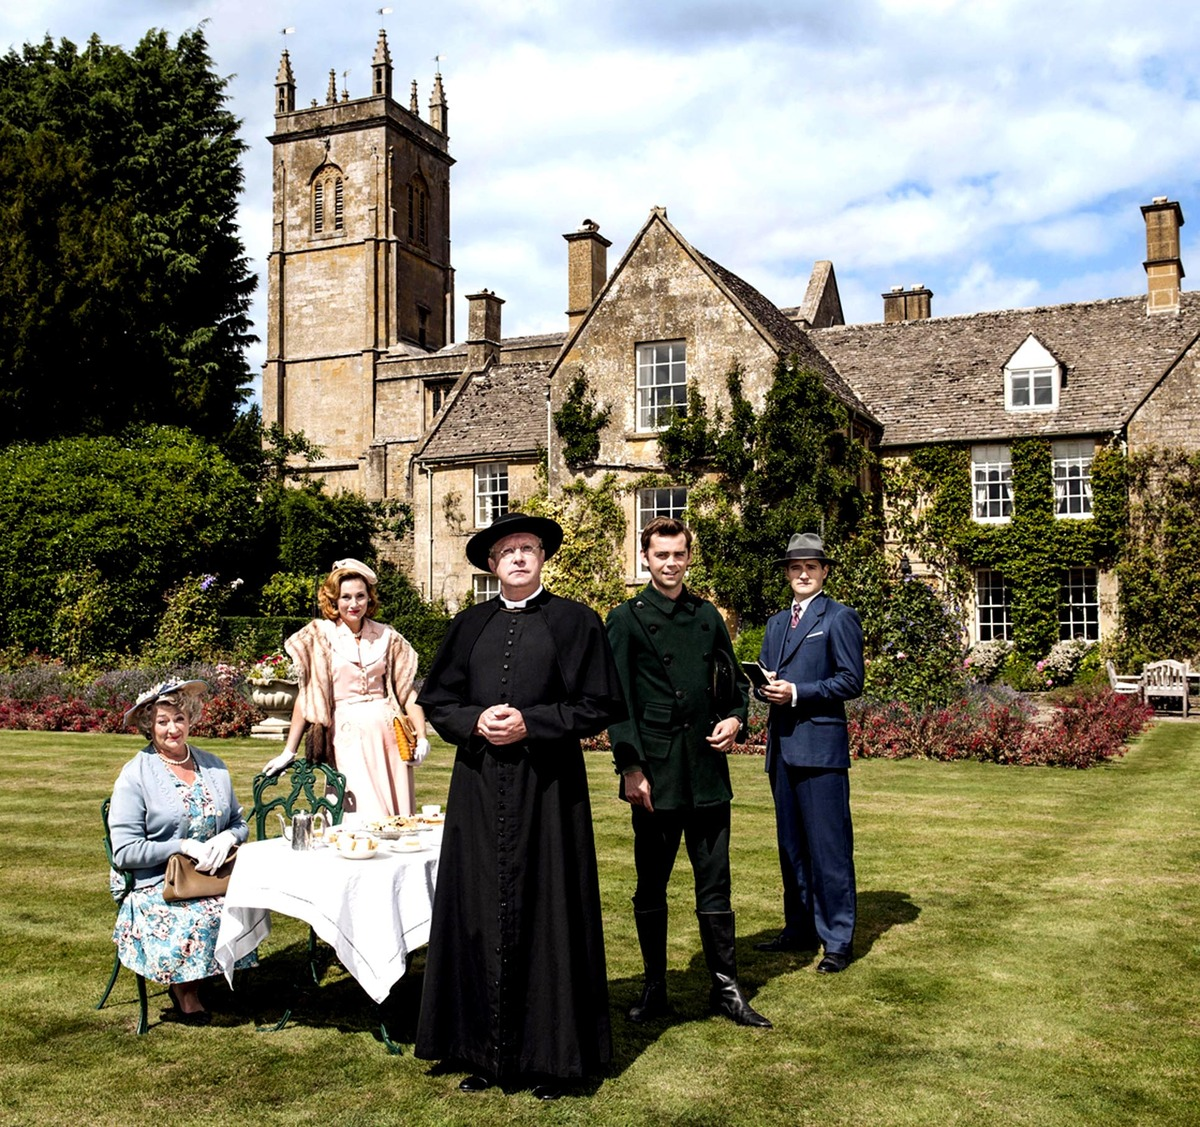 From left: Mrs McCarthy (Sorcha Cusack), Lady Felicia (Nancy Carroll), Father Brown (Mark Wiliams), Sid Carter (Alex Price) and Inspector Sullivan (Tom Chambers) in the grounds of the vicarage in Blockley – also known as Kembleford. Pic - Gary Moyes.